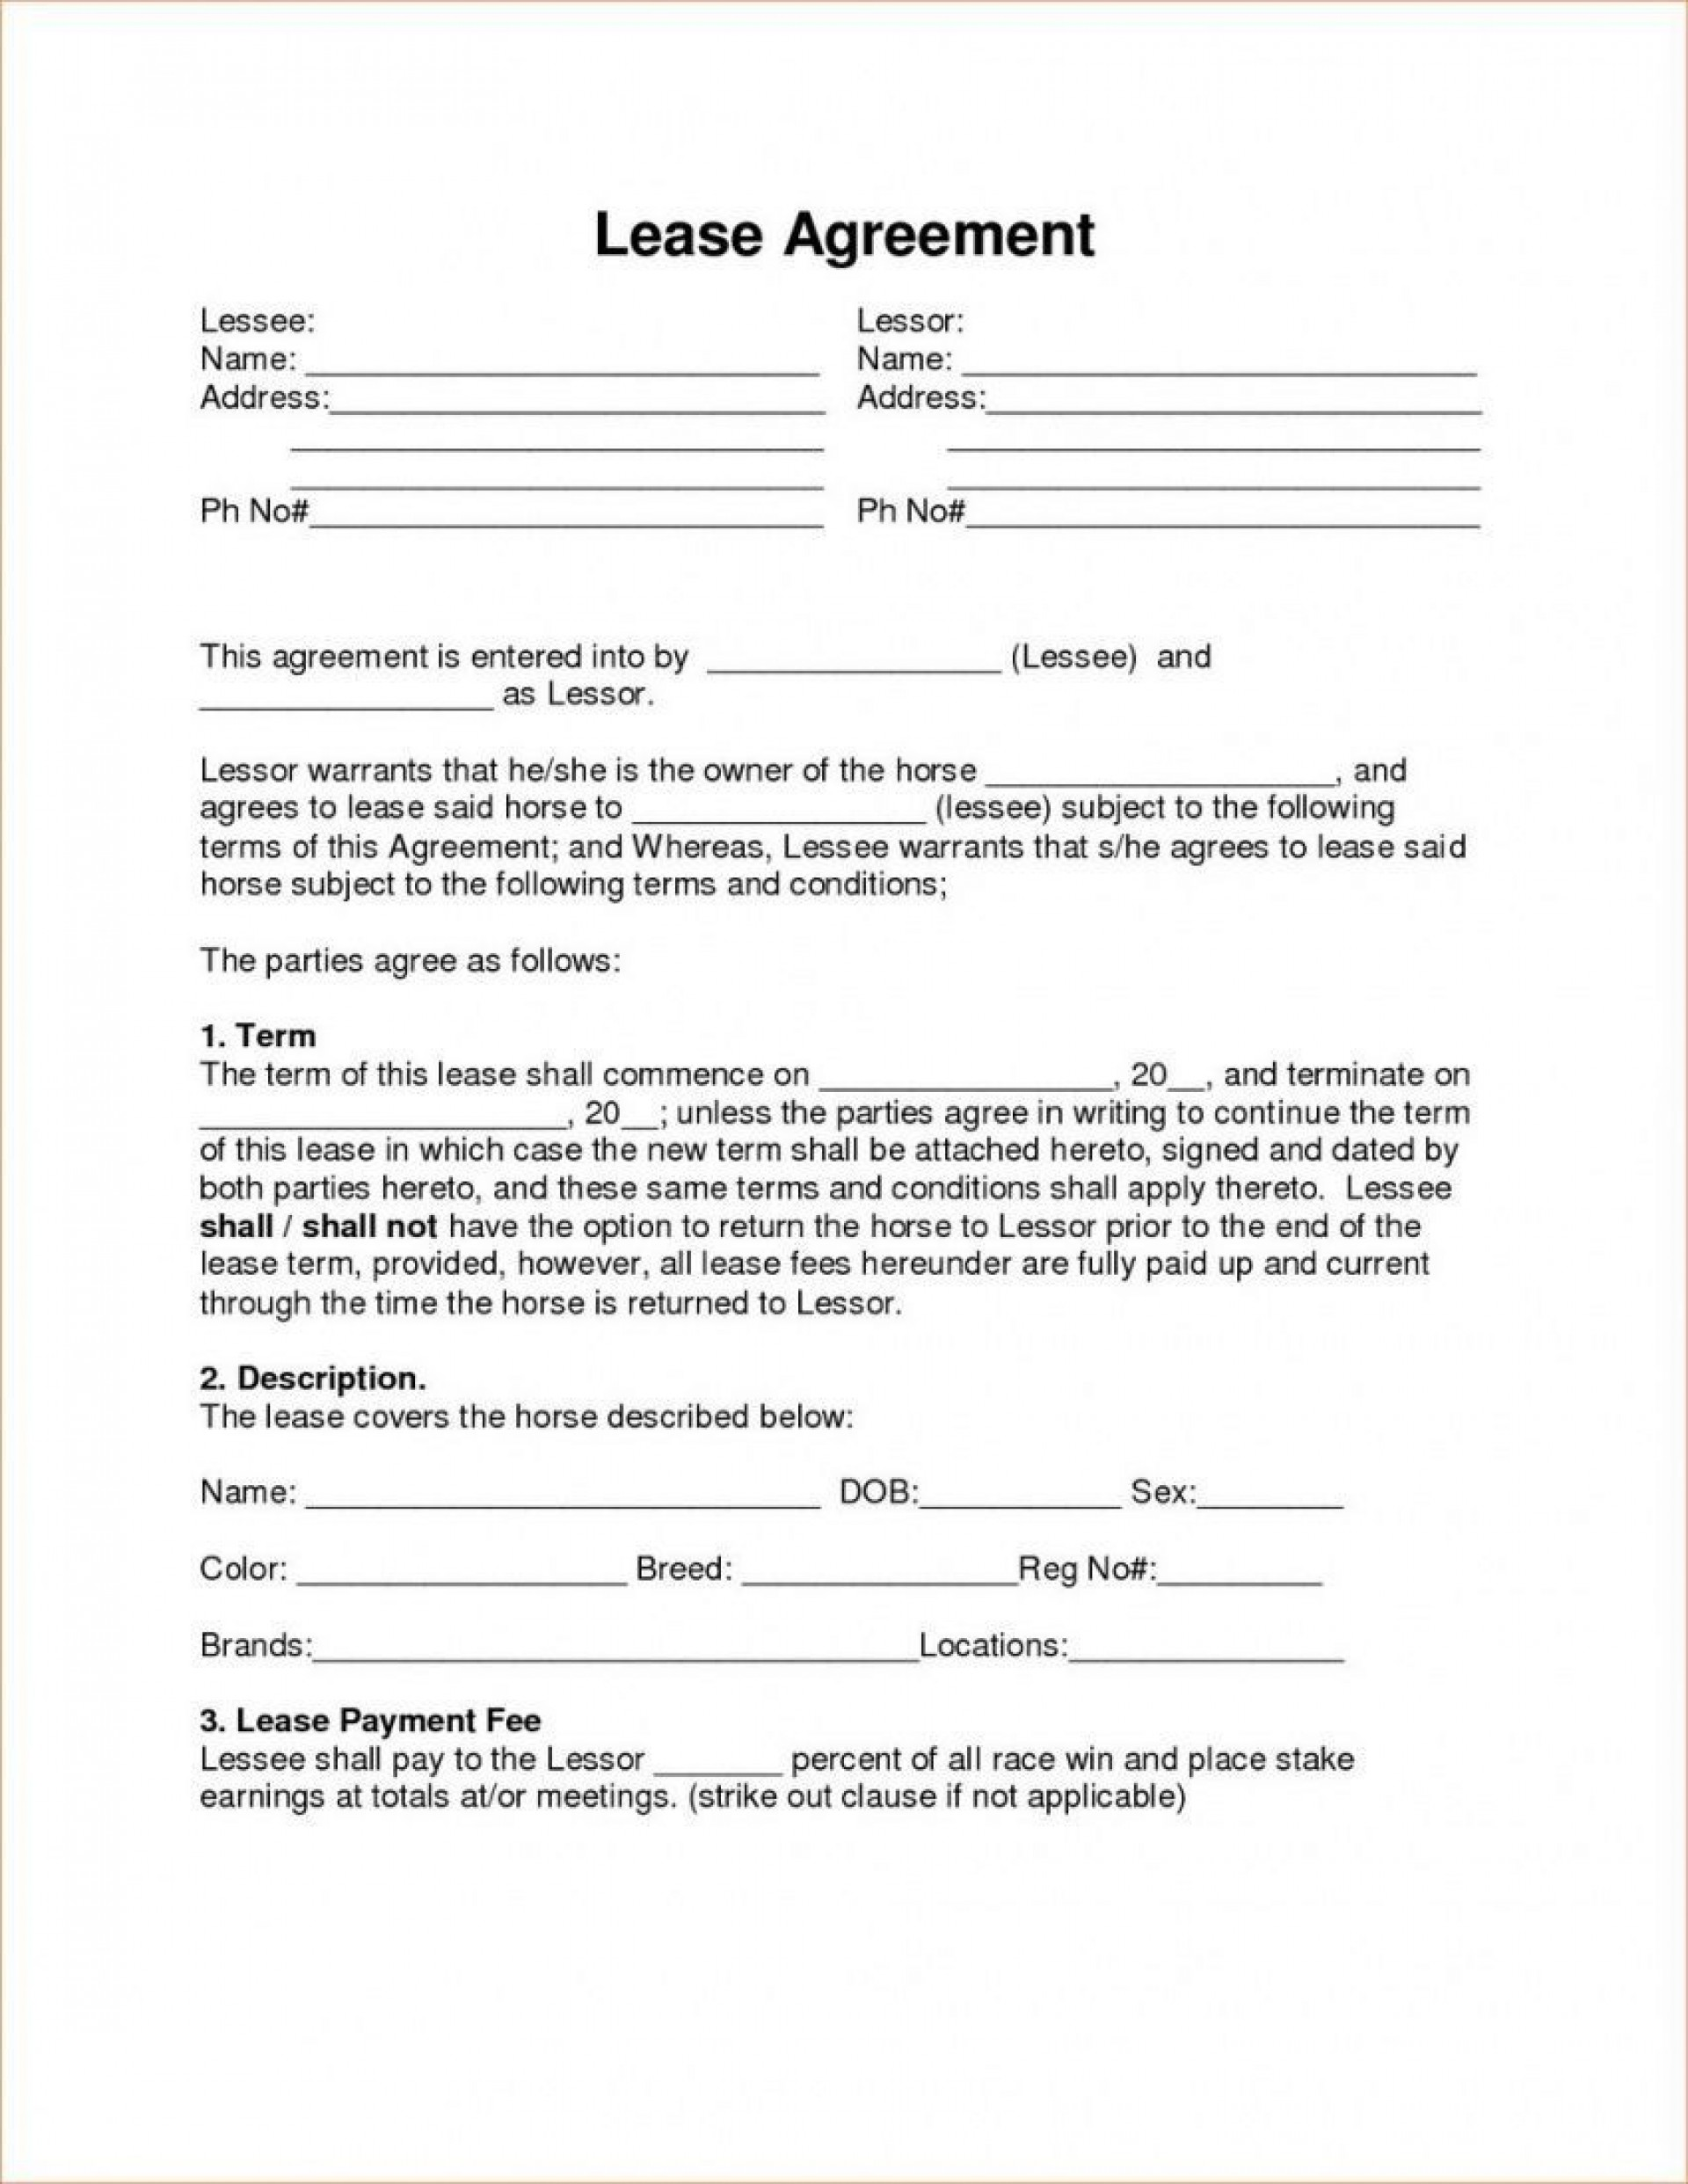 000 Incredible Rent To Own Contract Form Free Photo  For House Pdf1920